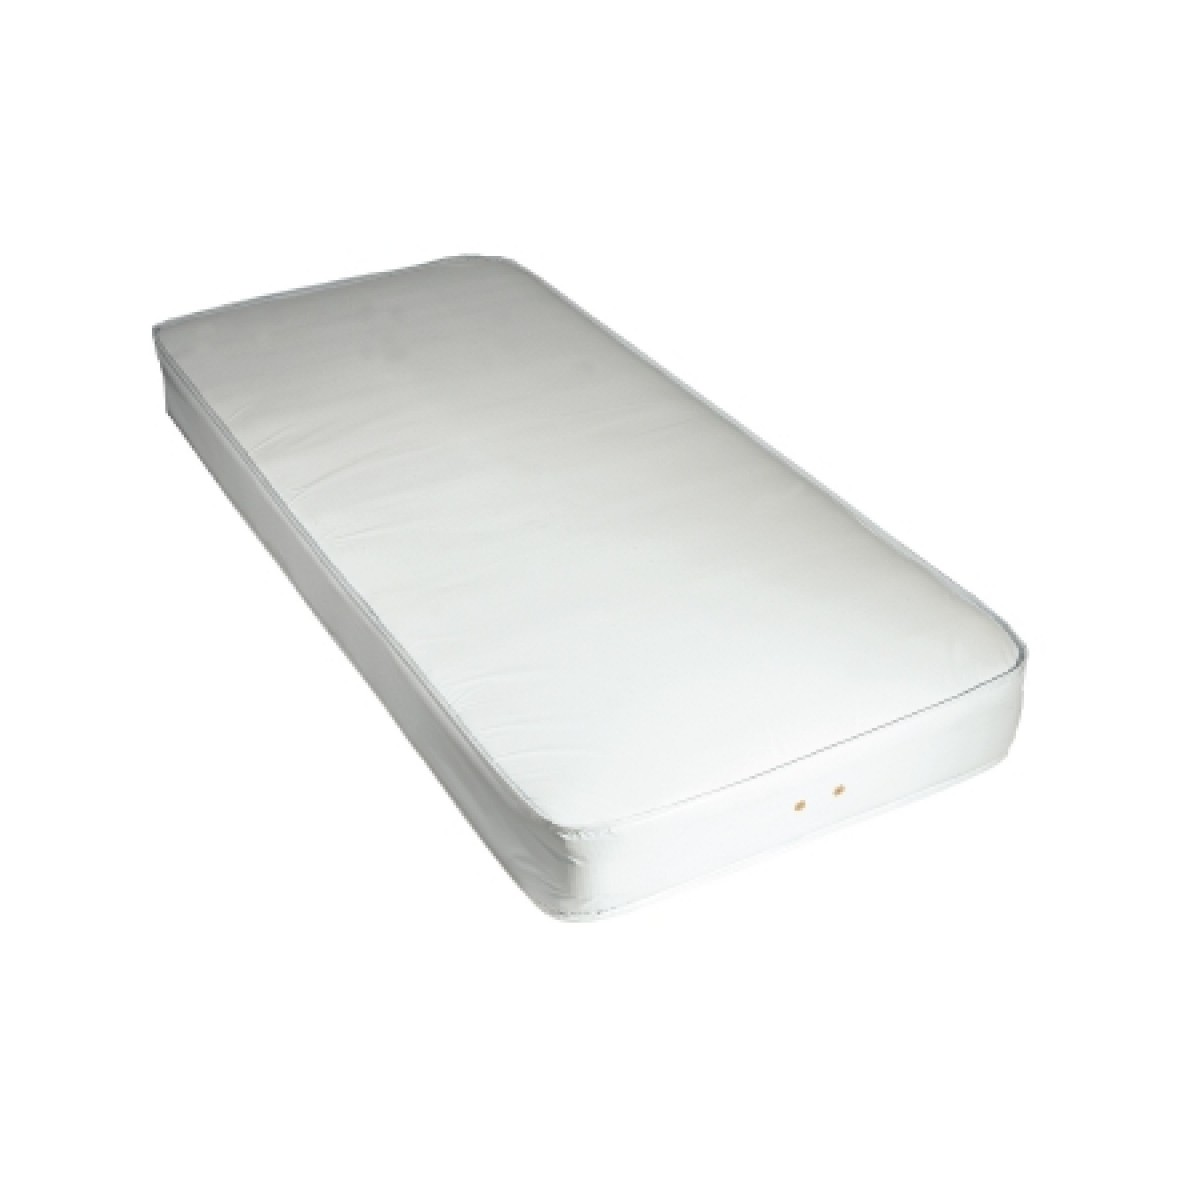 Inner Spring Mattress By Drive Medical 15006